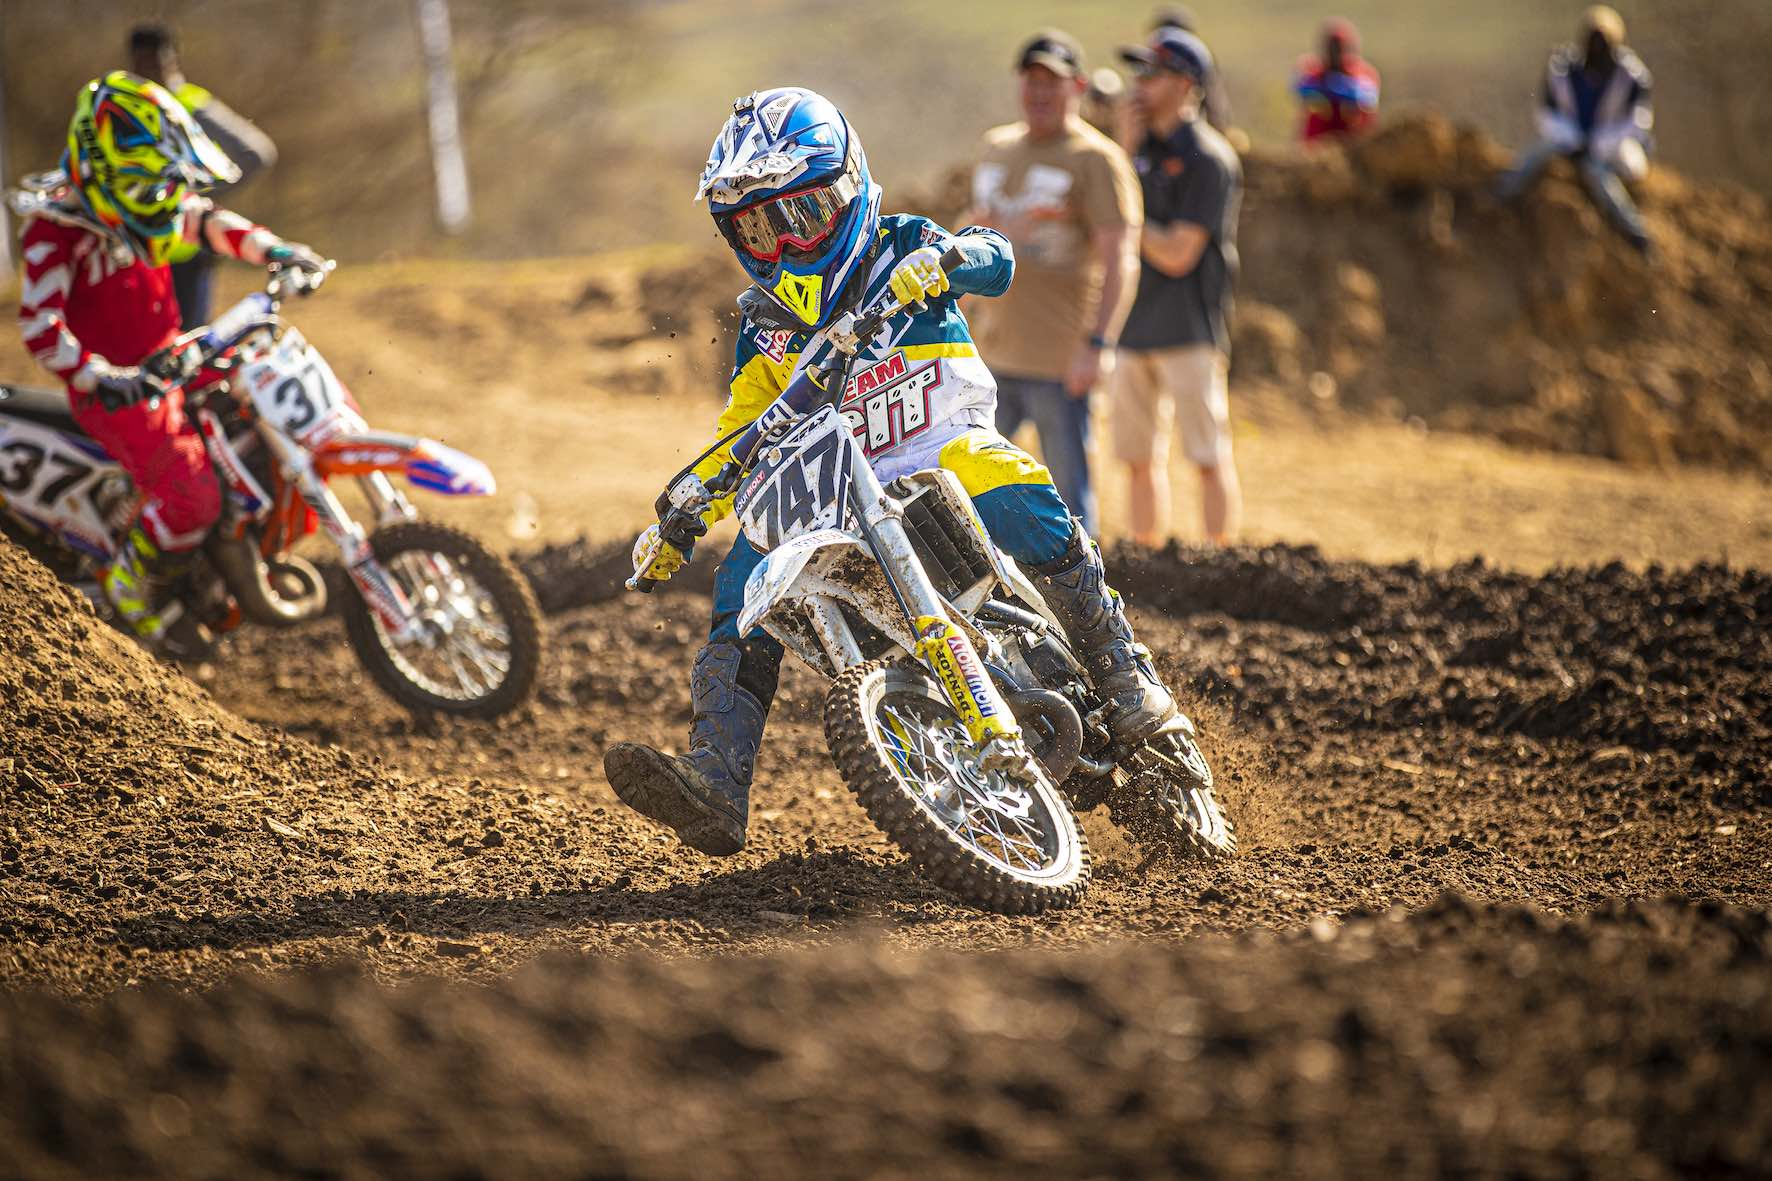 Jordan Van Wyk racing in the 2019 South African National Motocross Championship in Pietermaritzburg